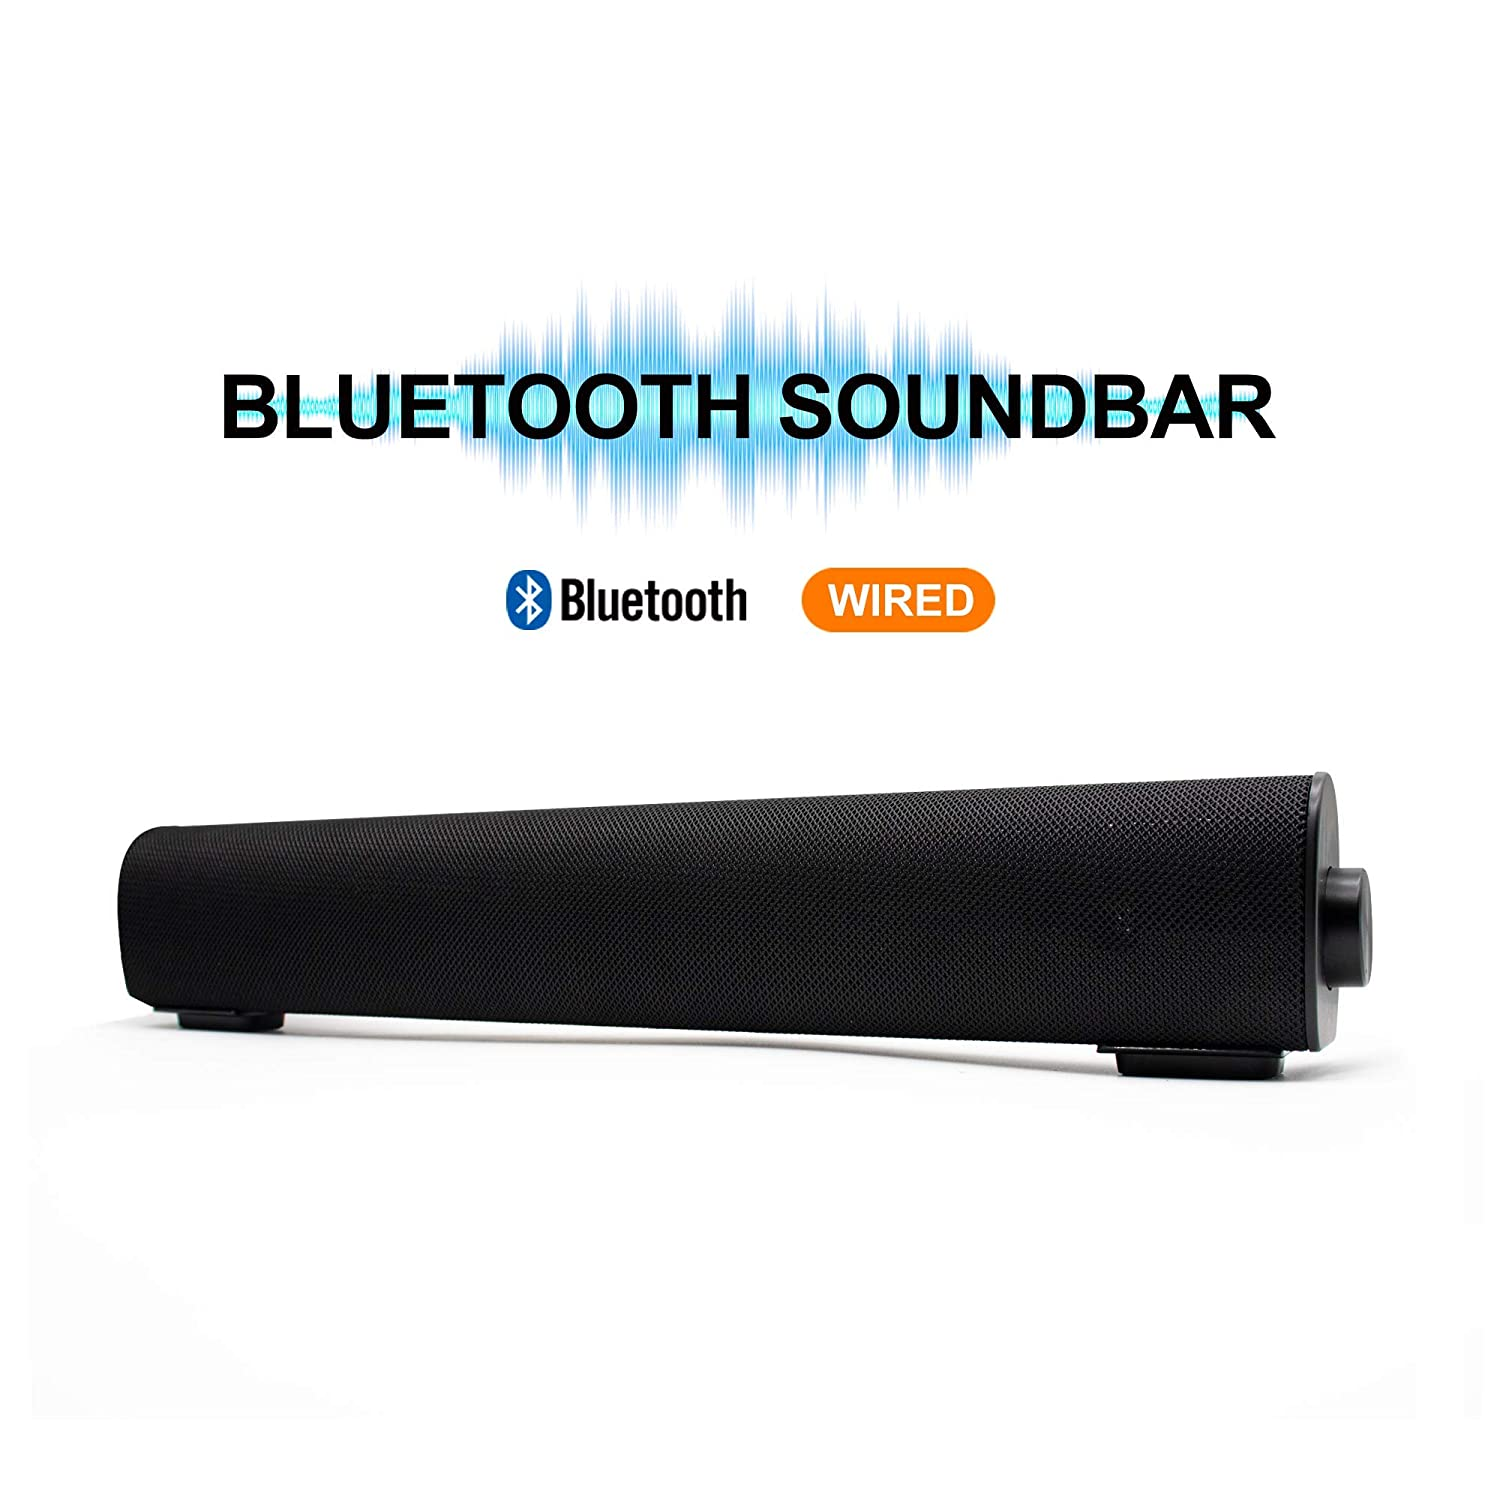 Soundbar Wired and Wireless Bluetooth Home Theater TV Stereo Speaker with Remote Control 2 X 5W Compact Sound Bar with Built-in Subwoofers for TV/PC/Phones/Tablets